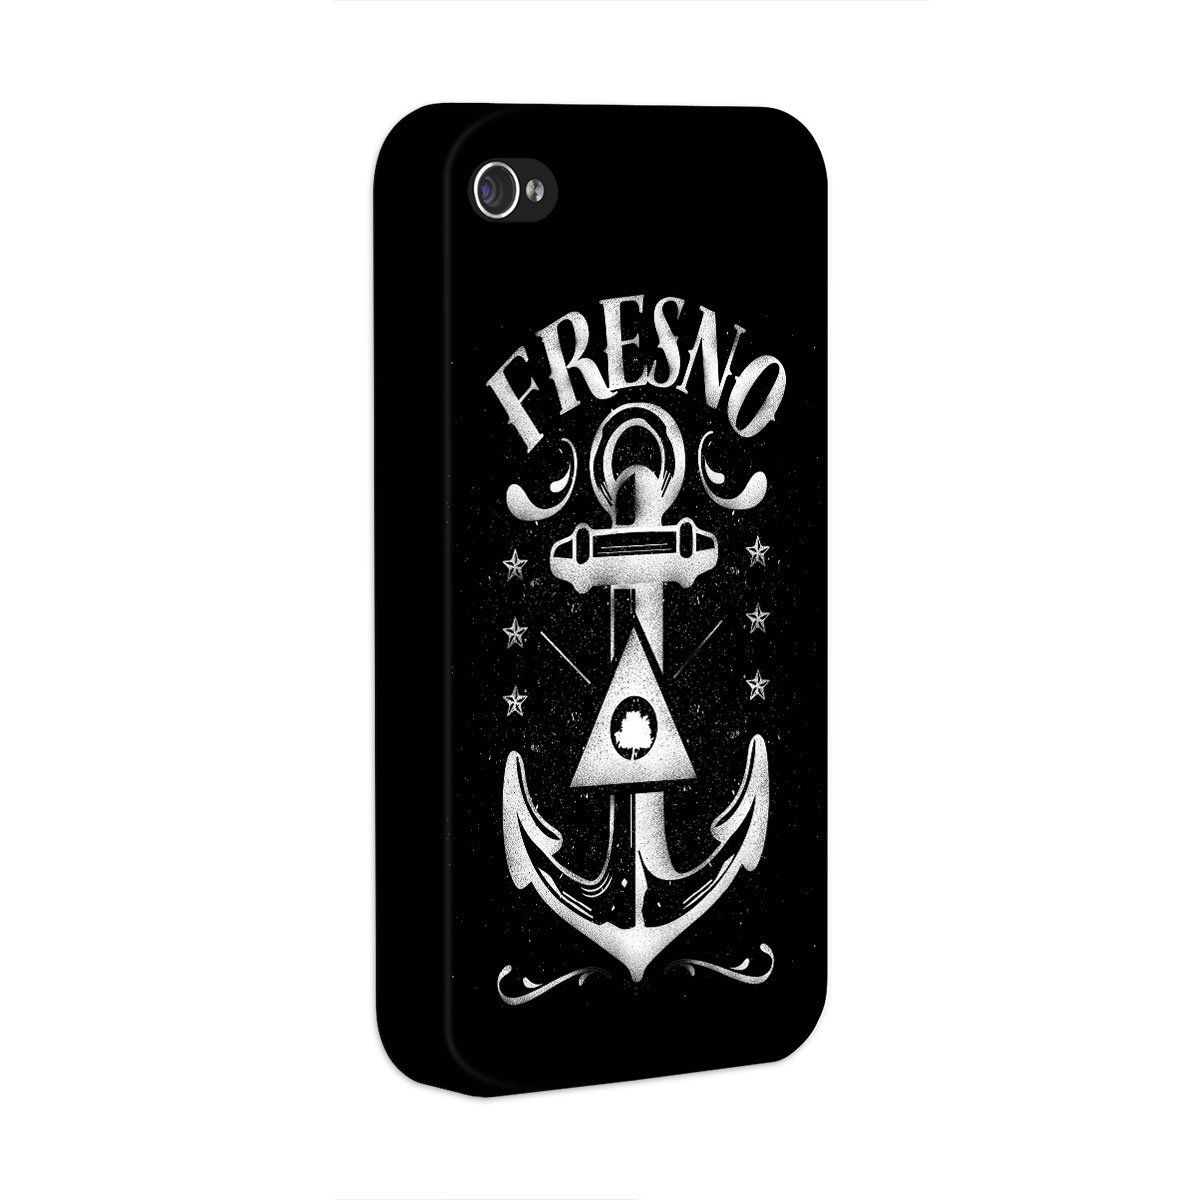 Capa para iPhone 4/4S Fresno Anchor